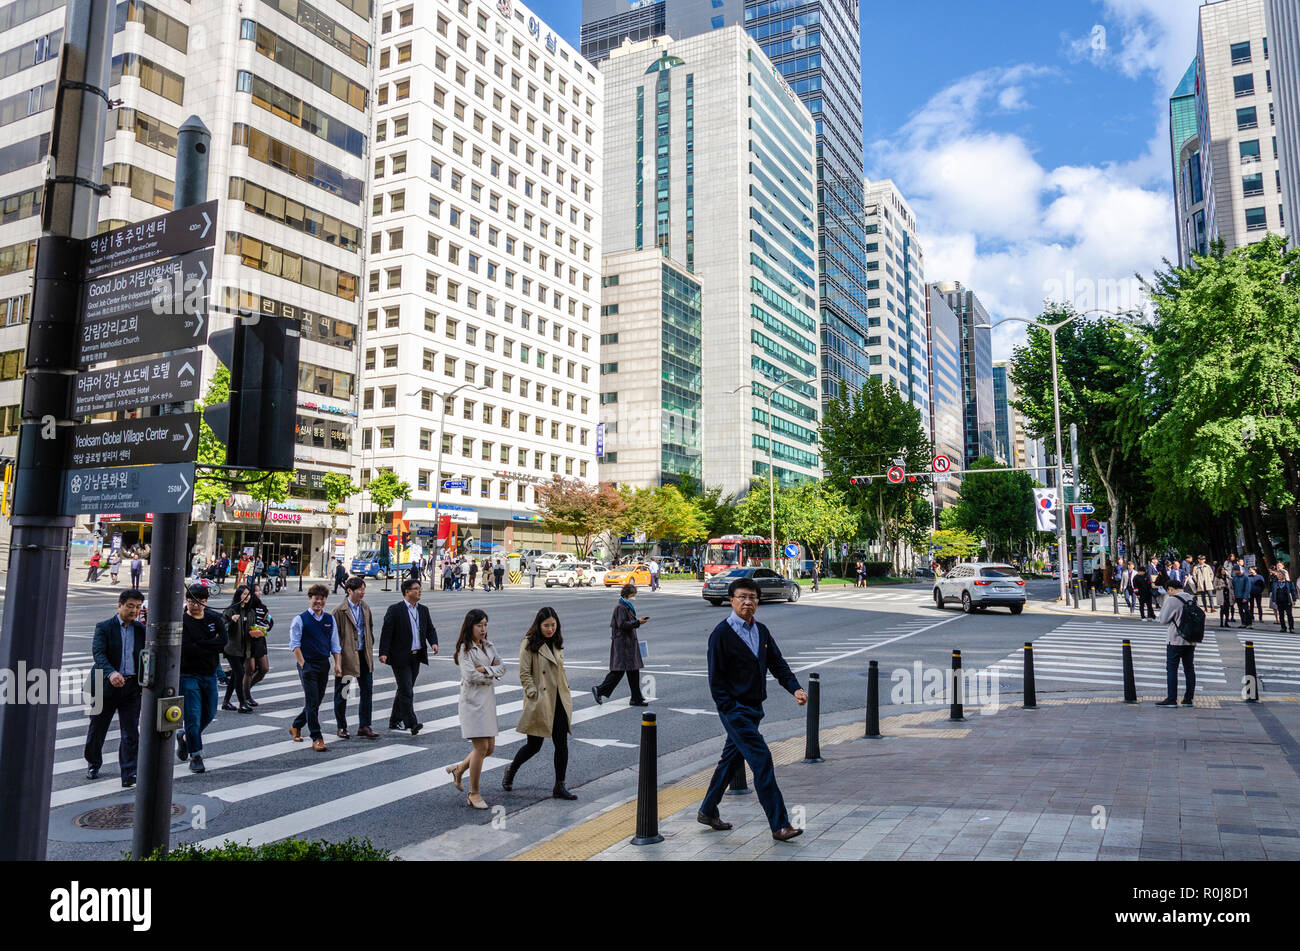 tall-buildings-against-a-blue-sky-with-clouds-in-this-cityscape-vew-of-the-gangnam-district-of-seoul-in-south-korea-R0J8D1.jpg